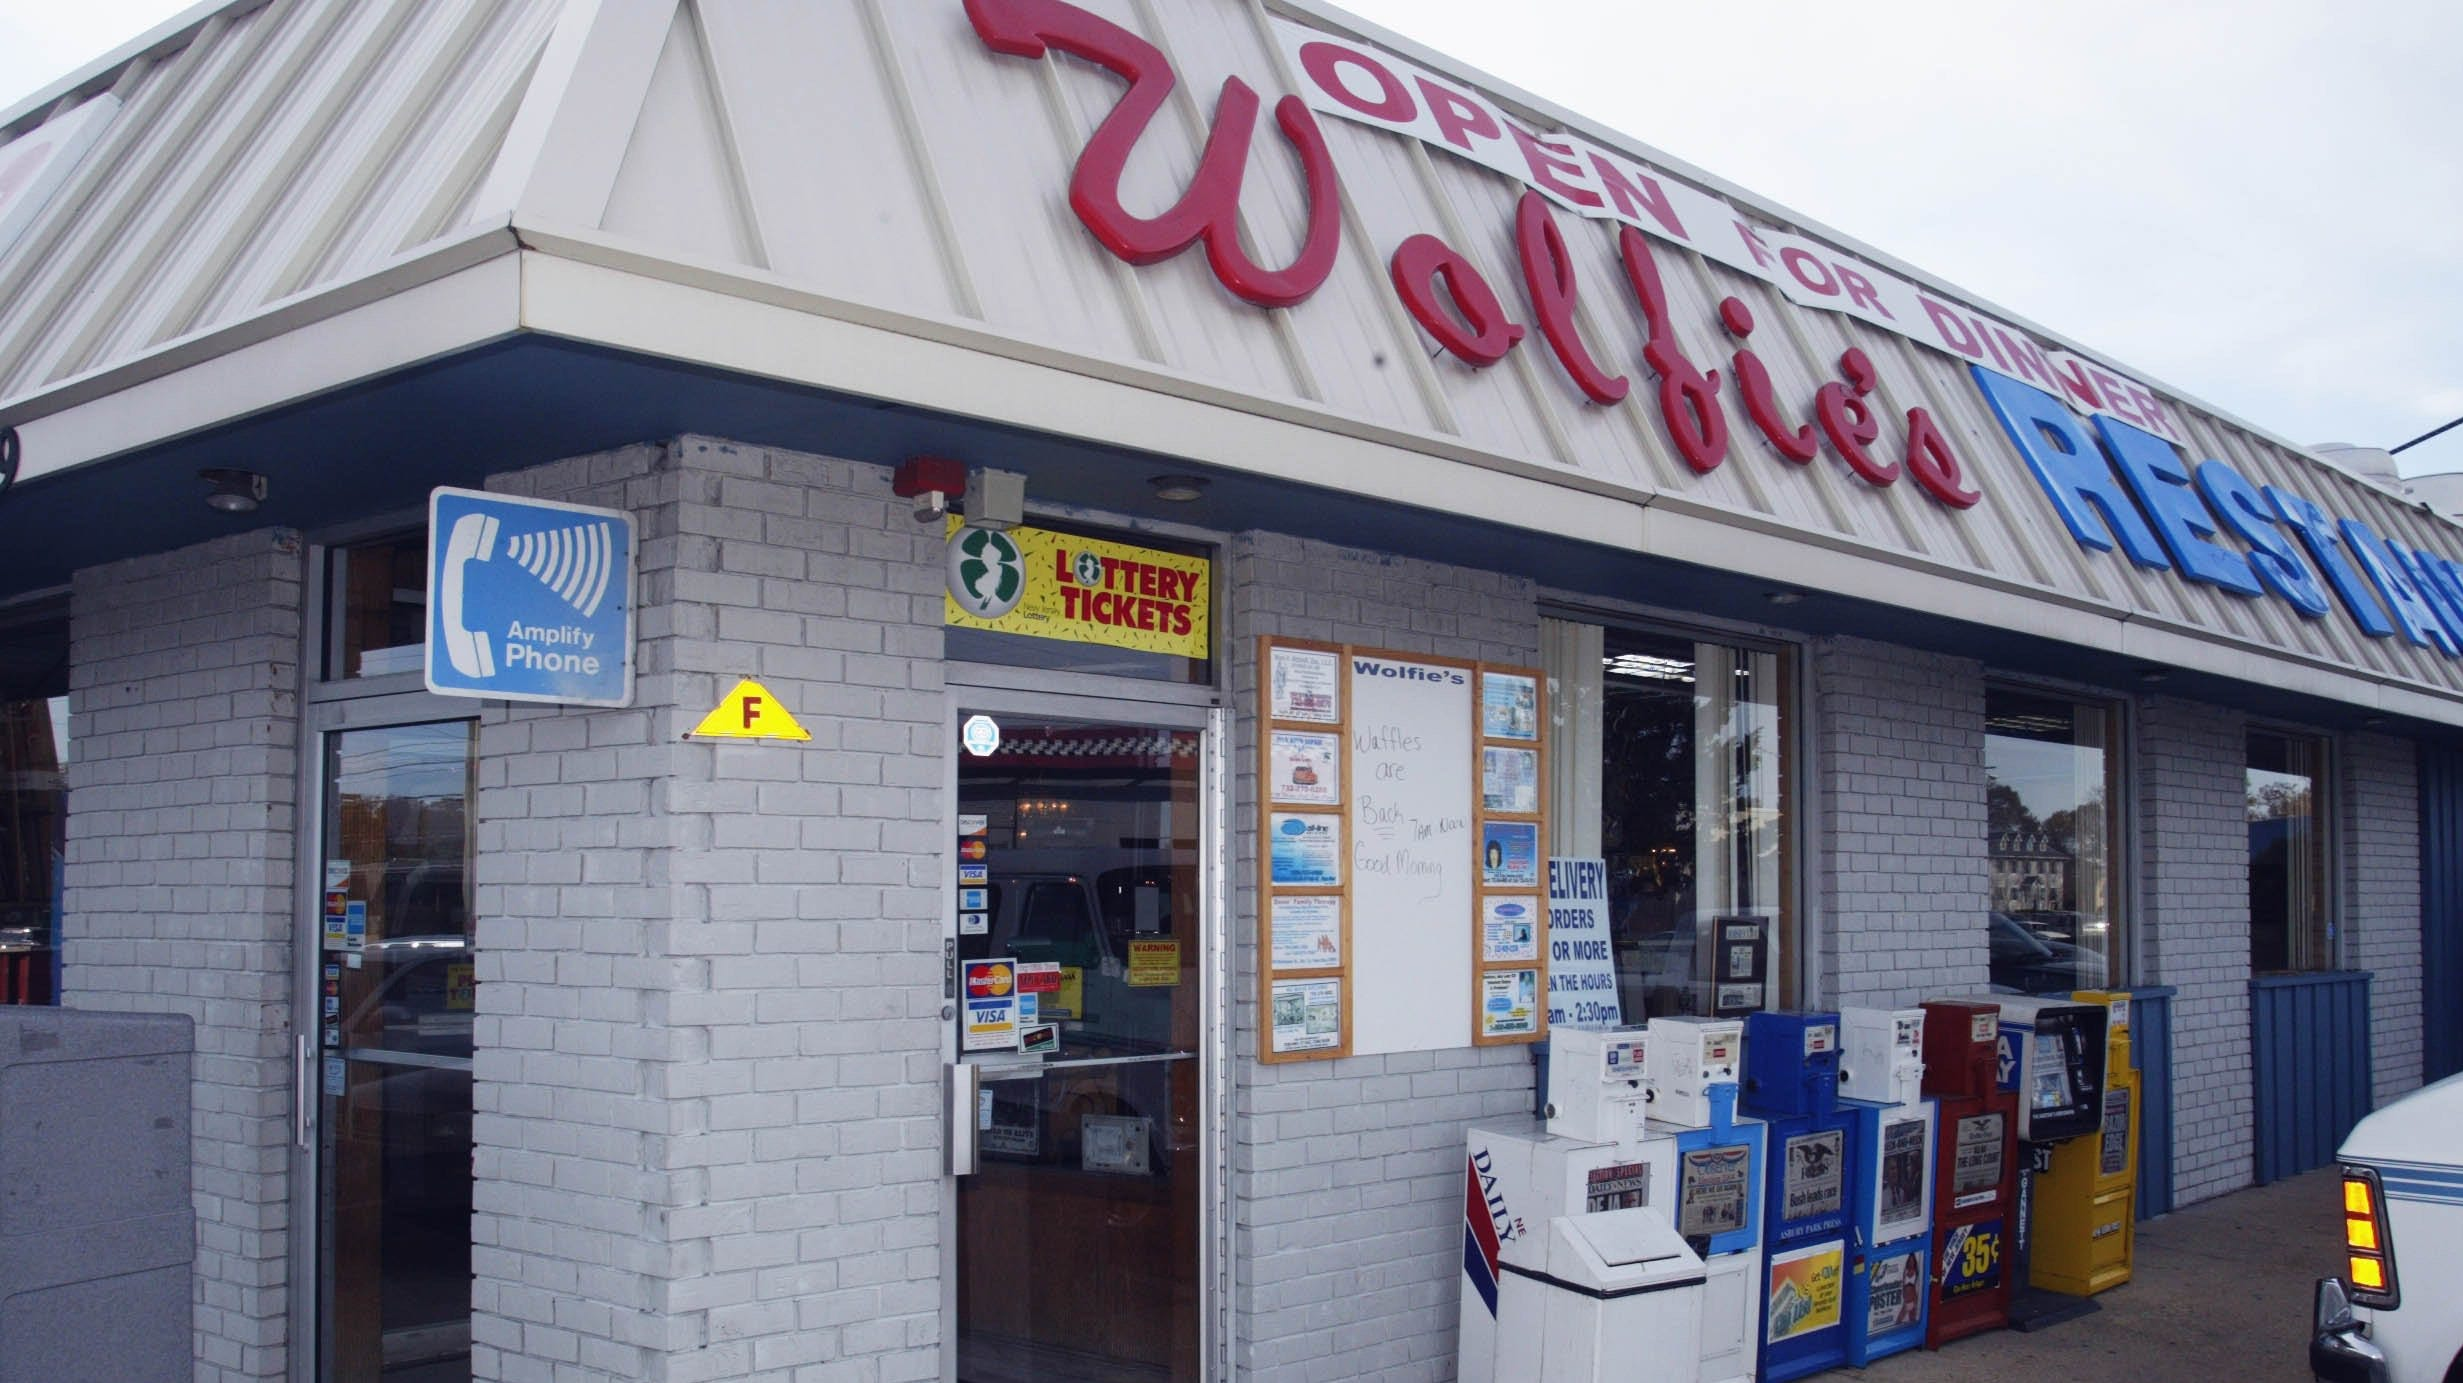 After 50 years as a family business, the owners of Wolfie's Deli in Toms River are ready to sell.